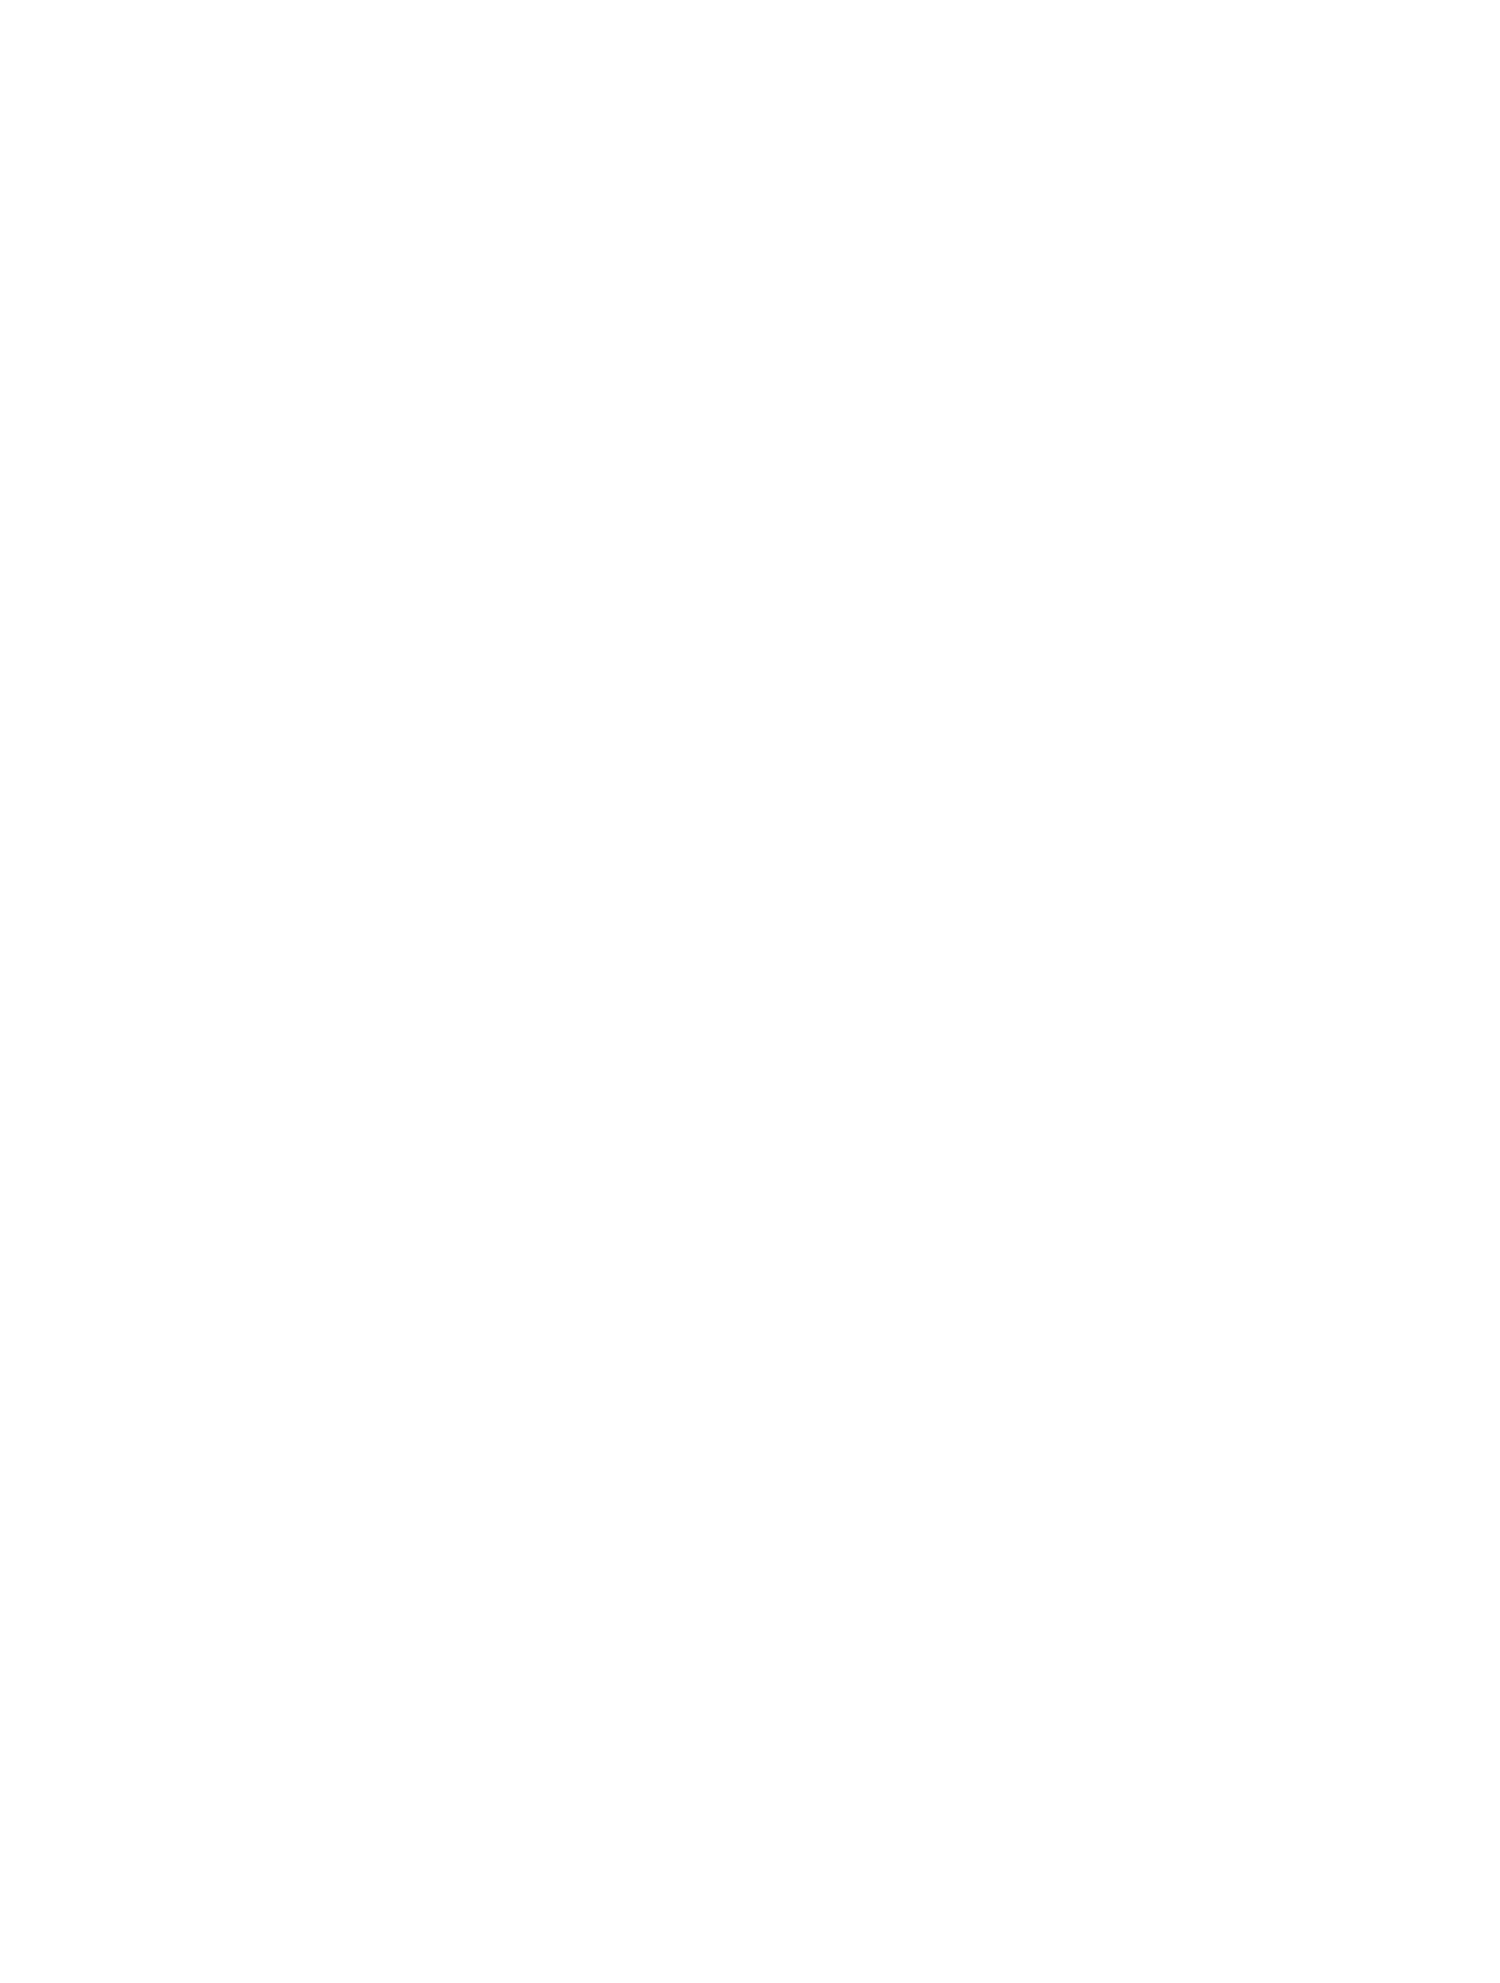 Price Youth Soccer Association